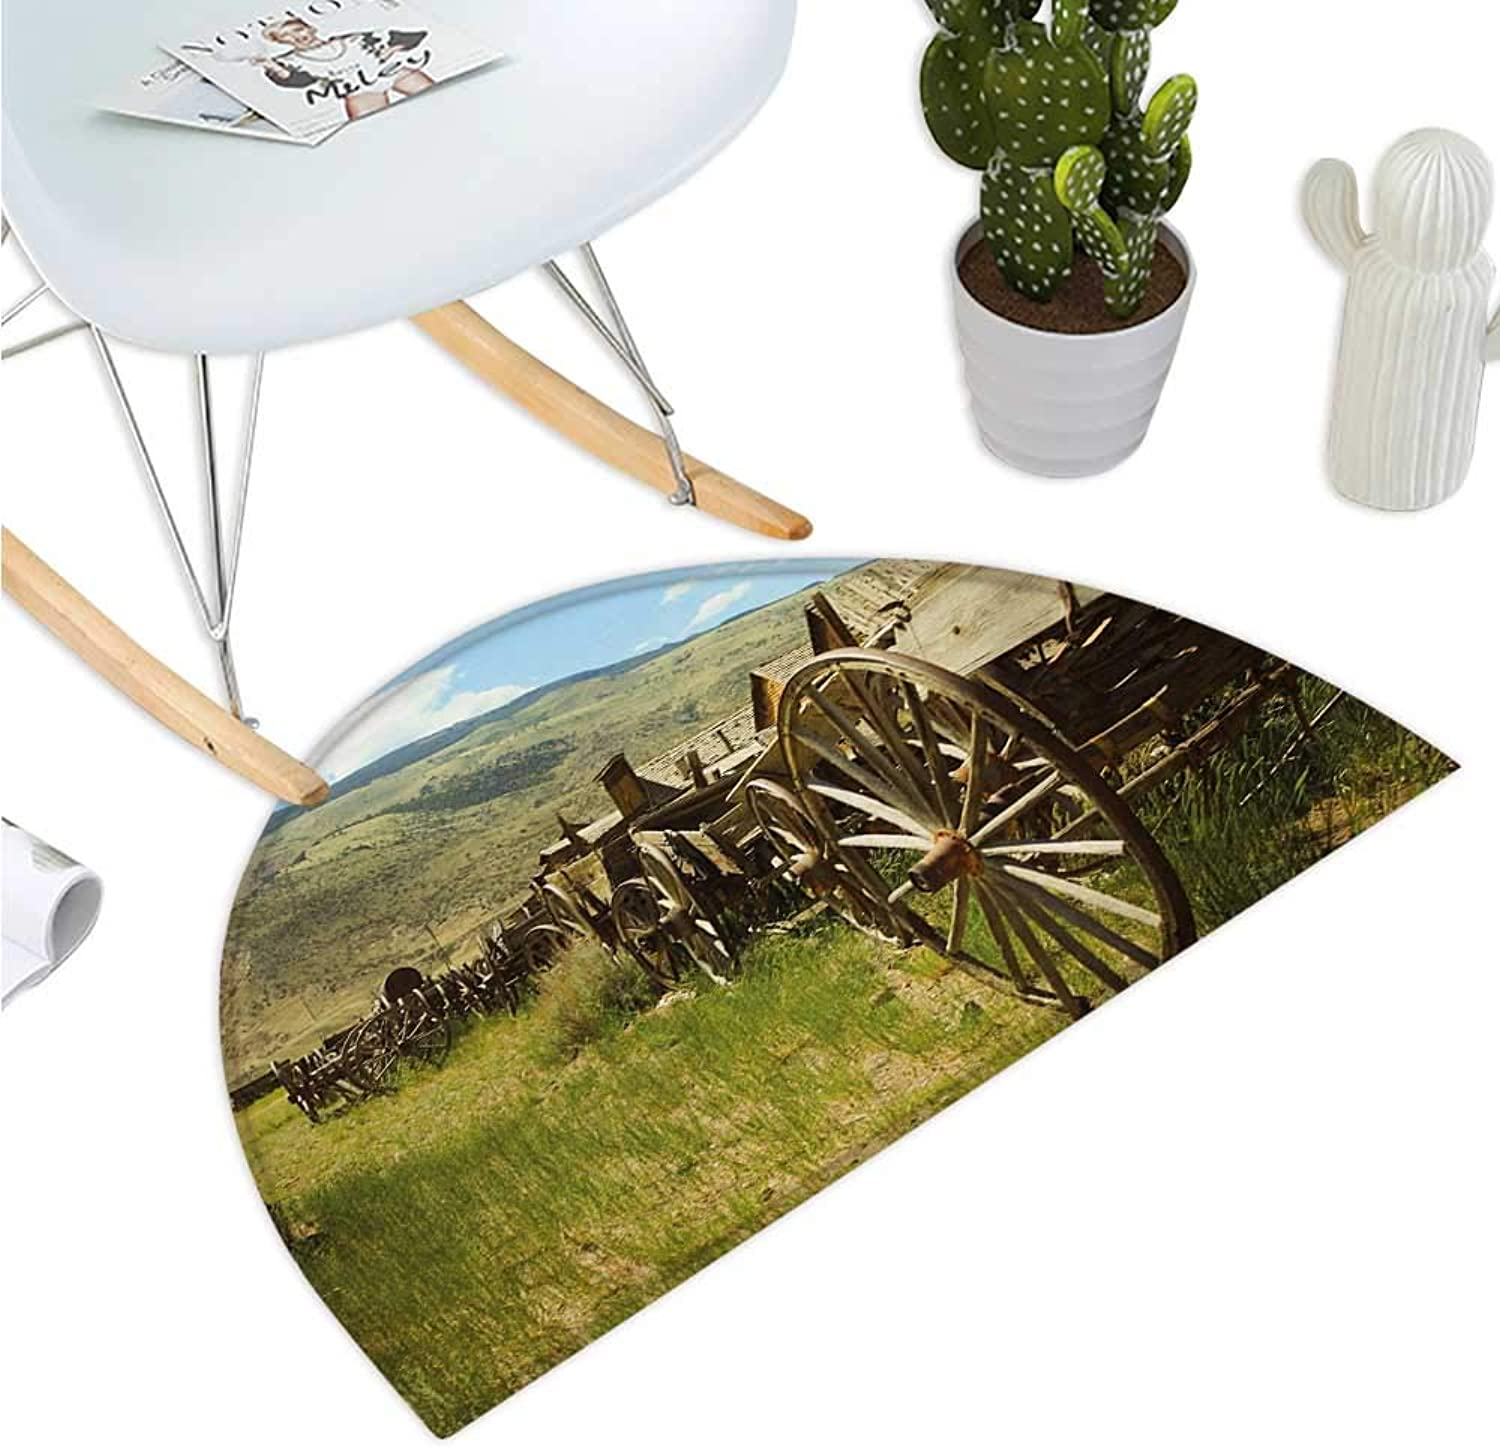 Barn Wood Wagon Wheel Semicircular Cushion Line of Antique Carriages in Rural Village Farm and Hills Entry Door Mat H 39.3  xD 59  Green Brown Pale bluee